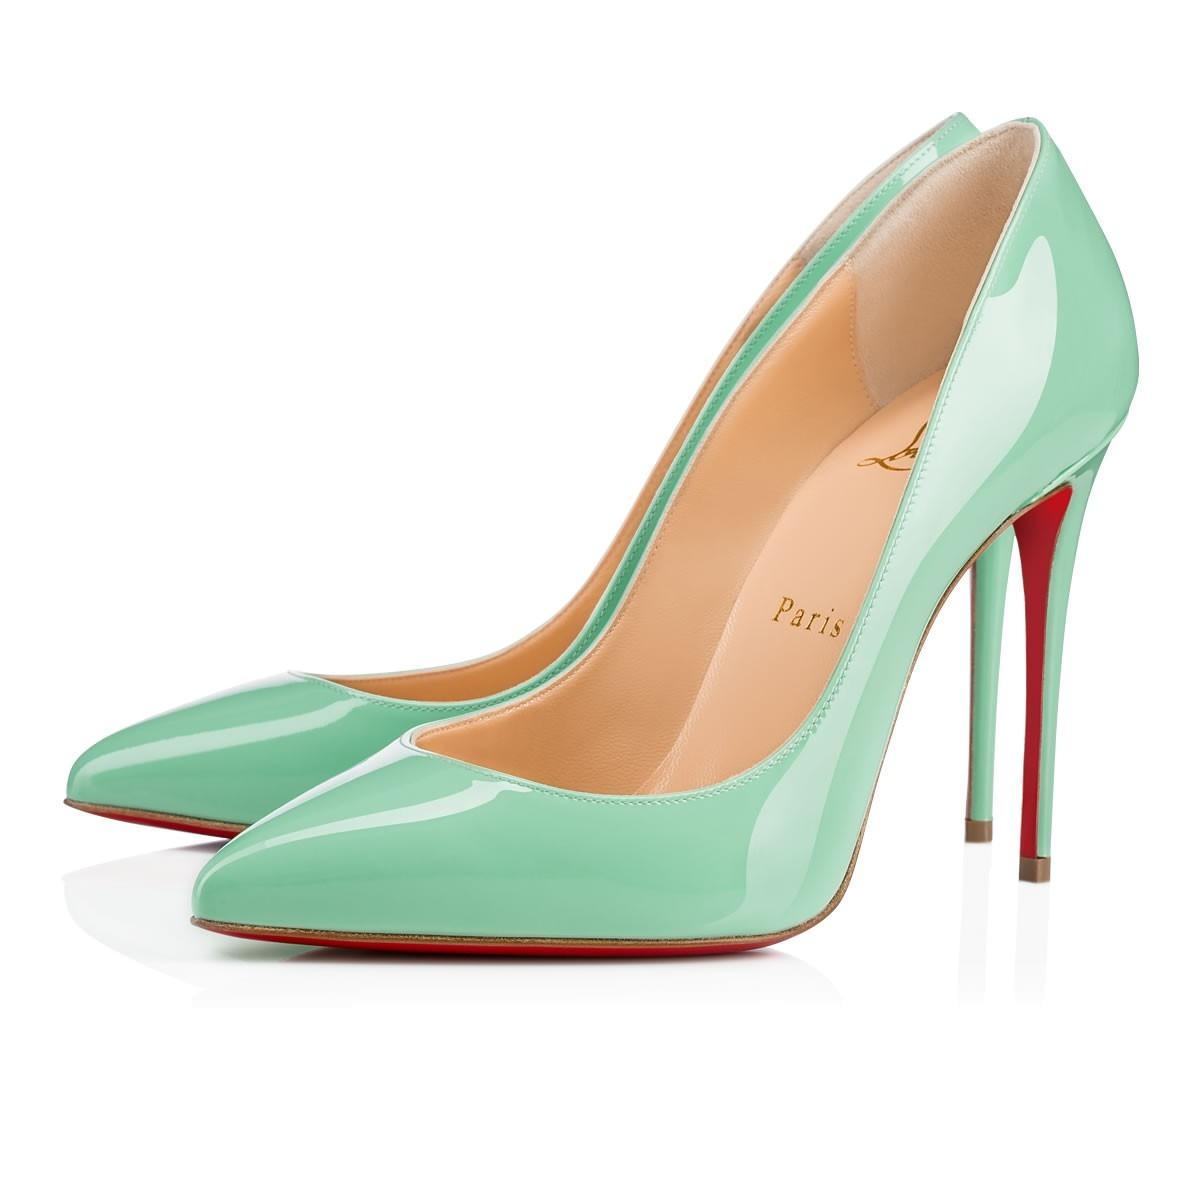 9ffa0e241014 Man Woman:Christian Louboutin Blue Pigalle Pigalle Pigalle Follies 100 Opal  Green Patent Heel Pumps Size EU 39 (Approx. US 9) Regular (M